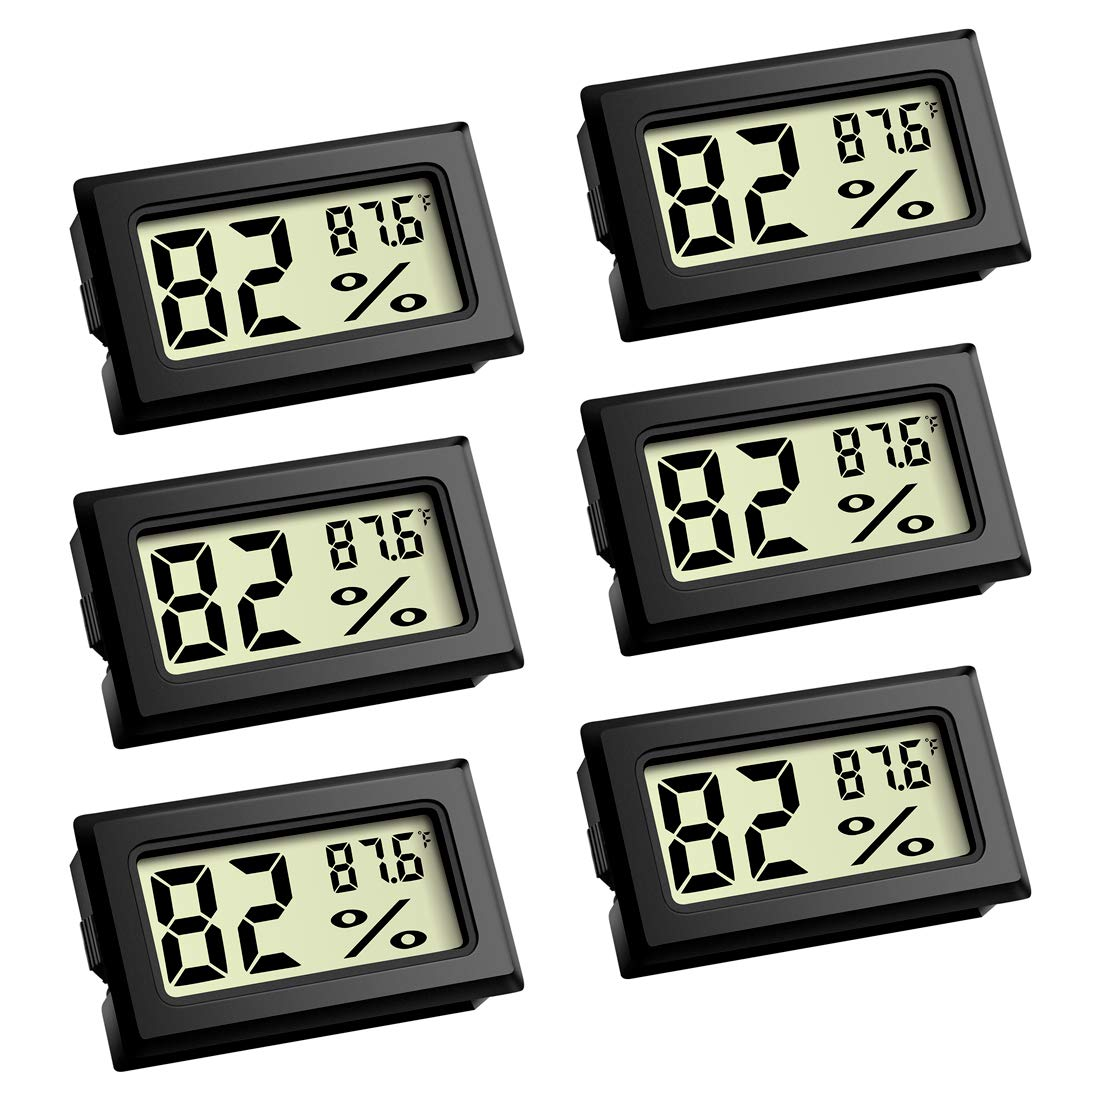 Mini Thermometer, Digital Refrigerator Freezer Thermometer with LCD Display - 6 Pack Fahrenheit (℉) Thermometer Hygrometer for Humidors, Greenhouse, Garden, Cellar, Fridge, Closet by COOES